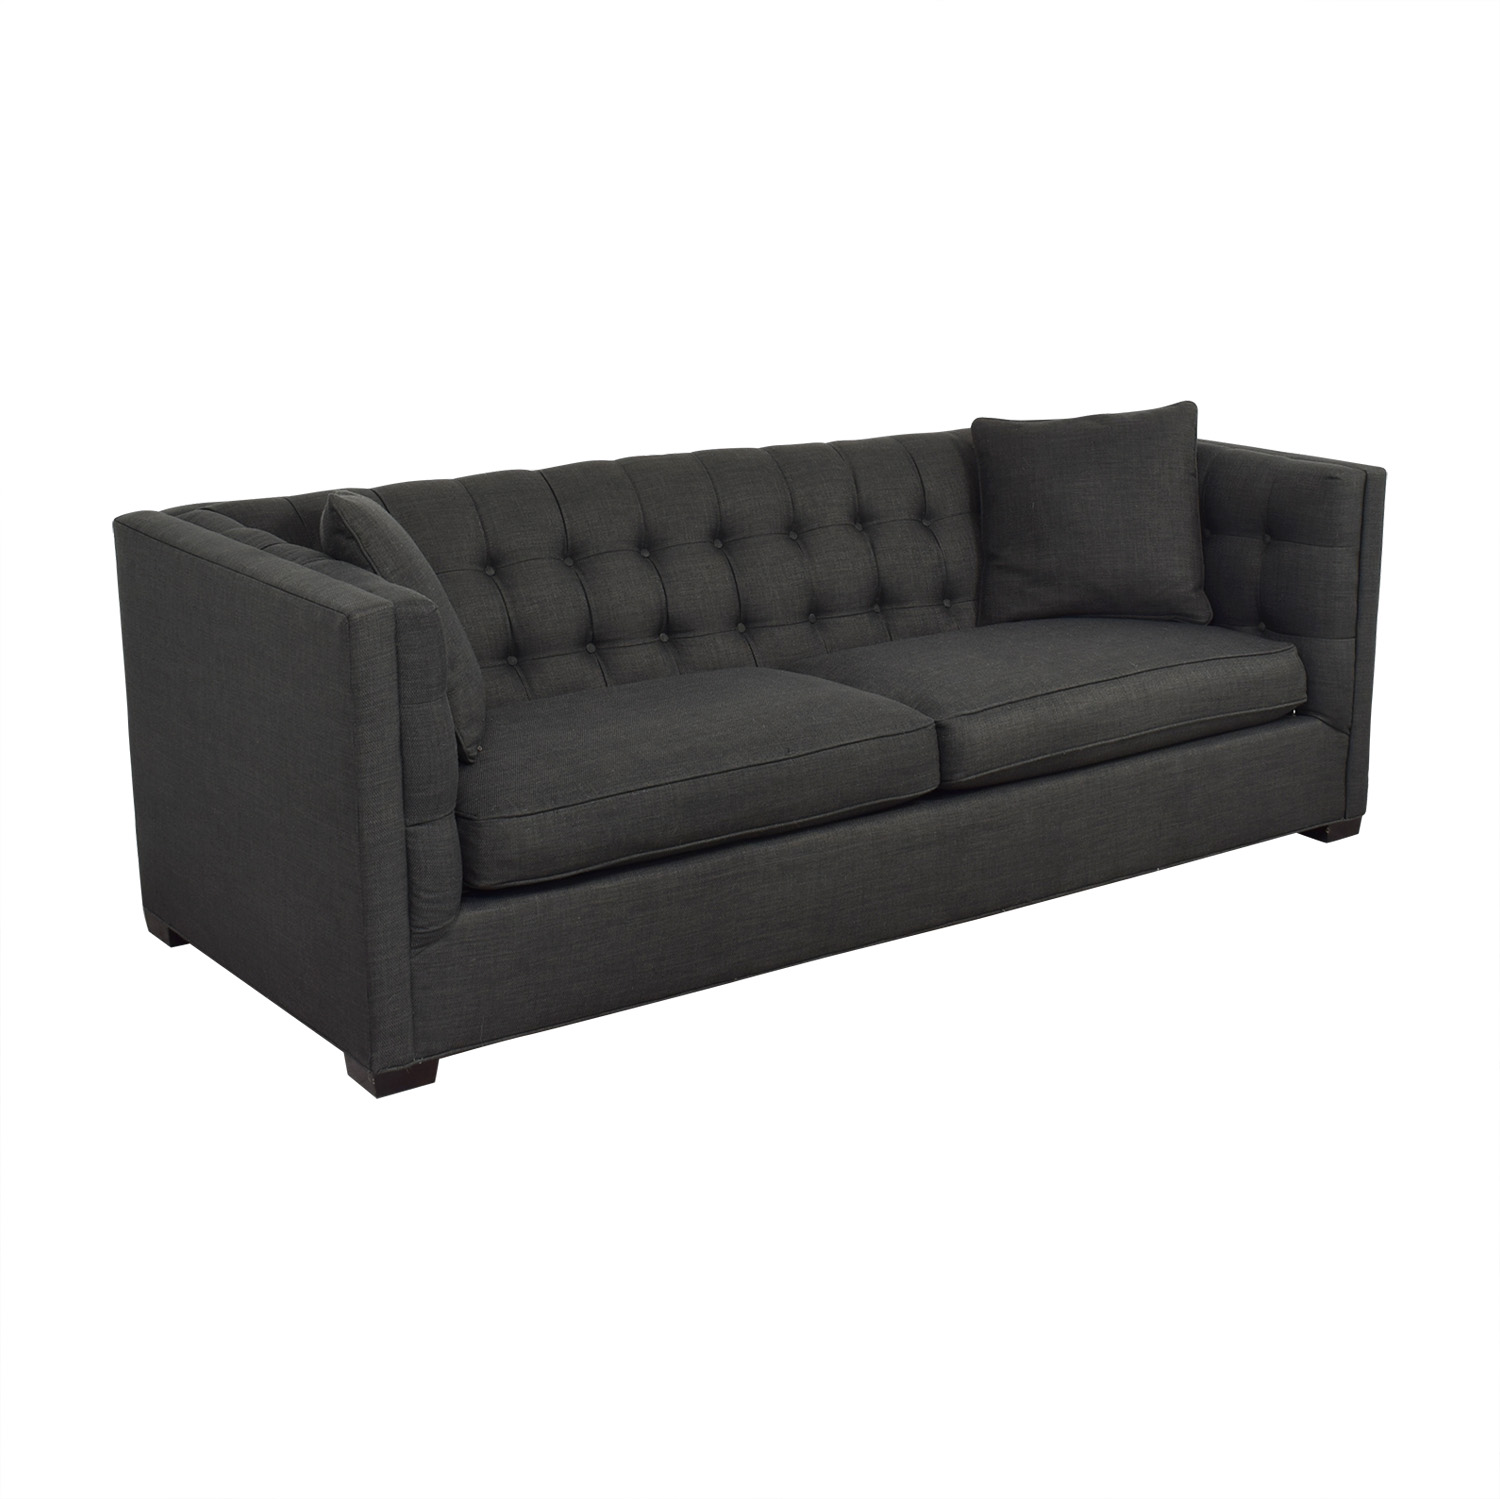 Raymour & Flanigan Raymour & Flanigan Tufted Tuxedo Sofa nj